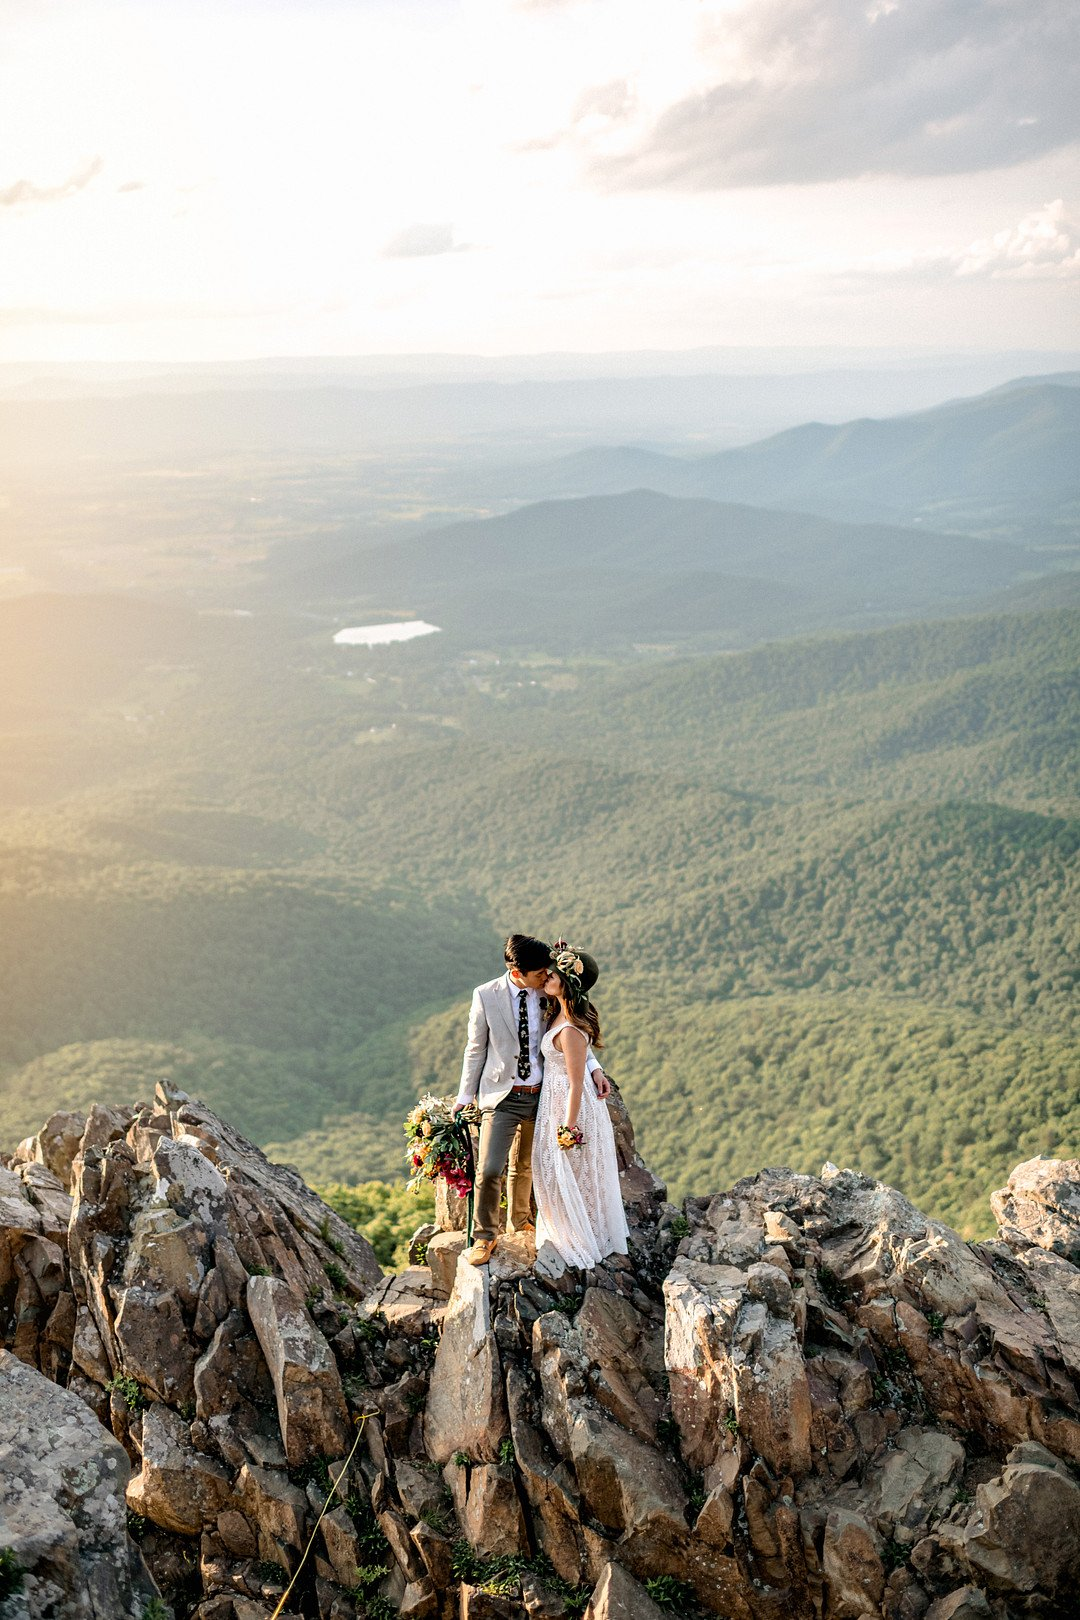 Boho Mountain Elopement in Shenandoah National Park_1001 Angles Photography_Shenandoah National Park Adventure Elopement-215_low